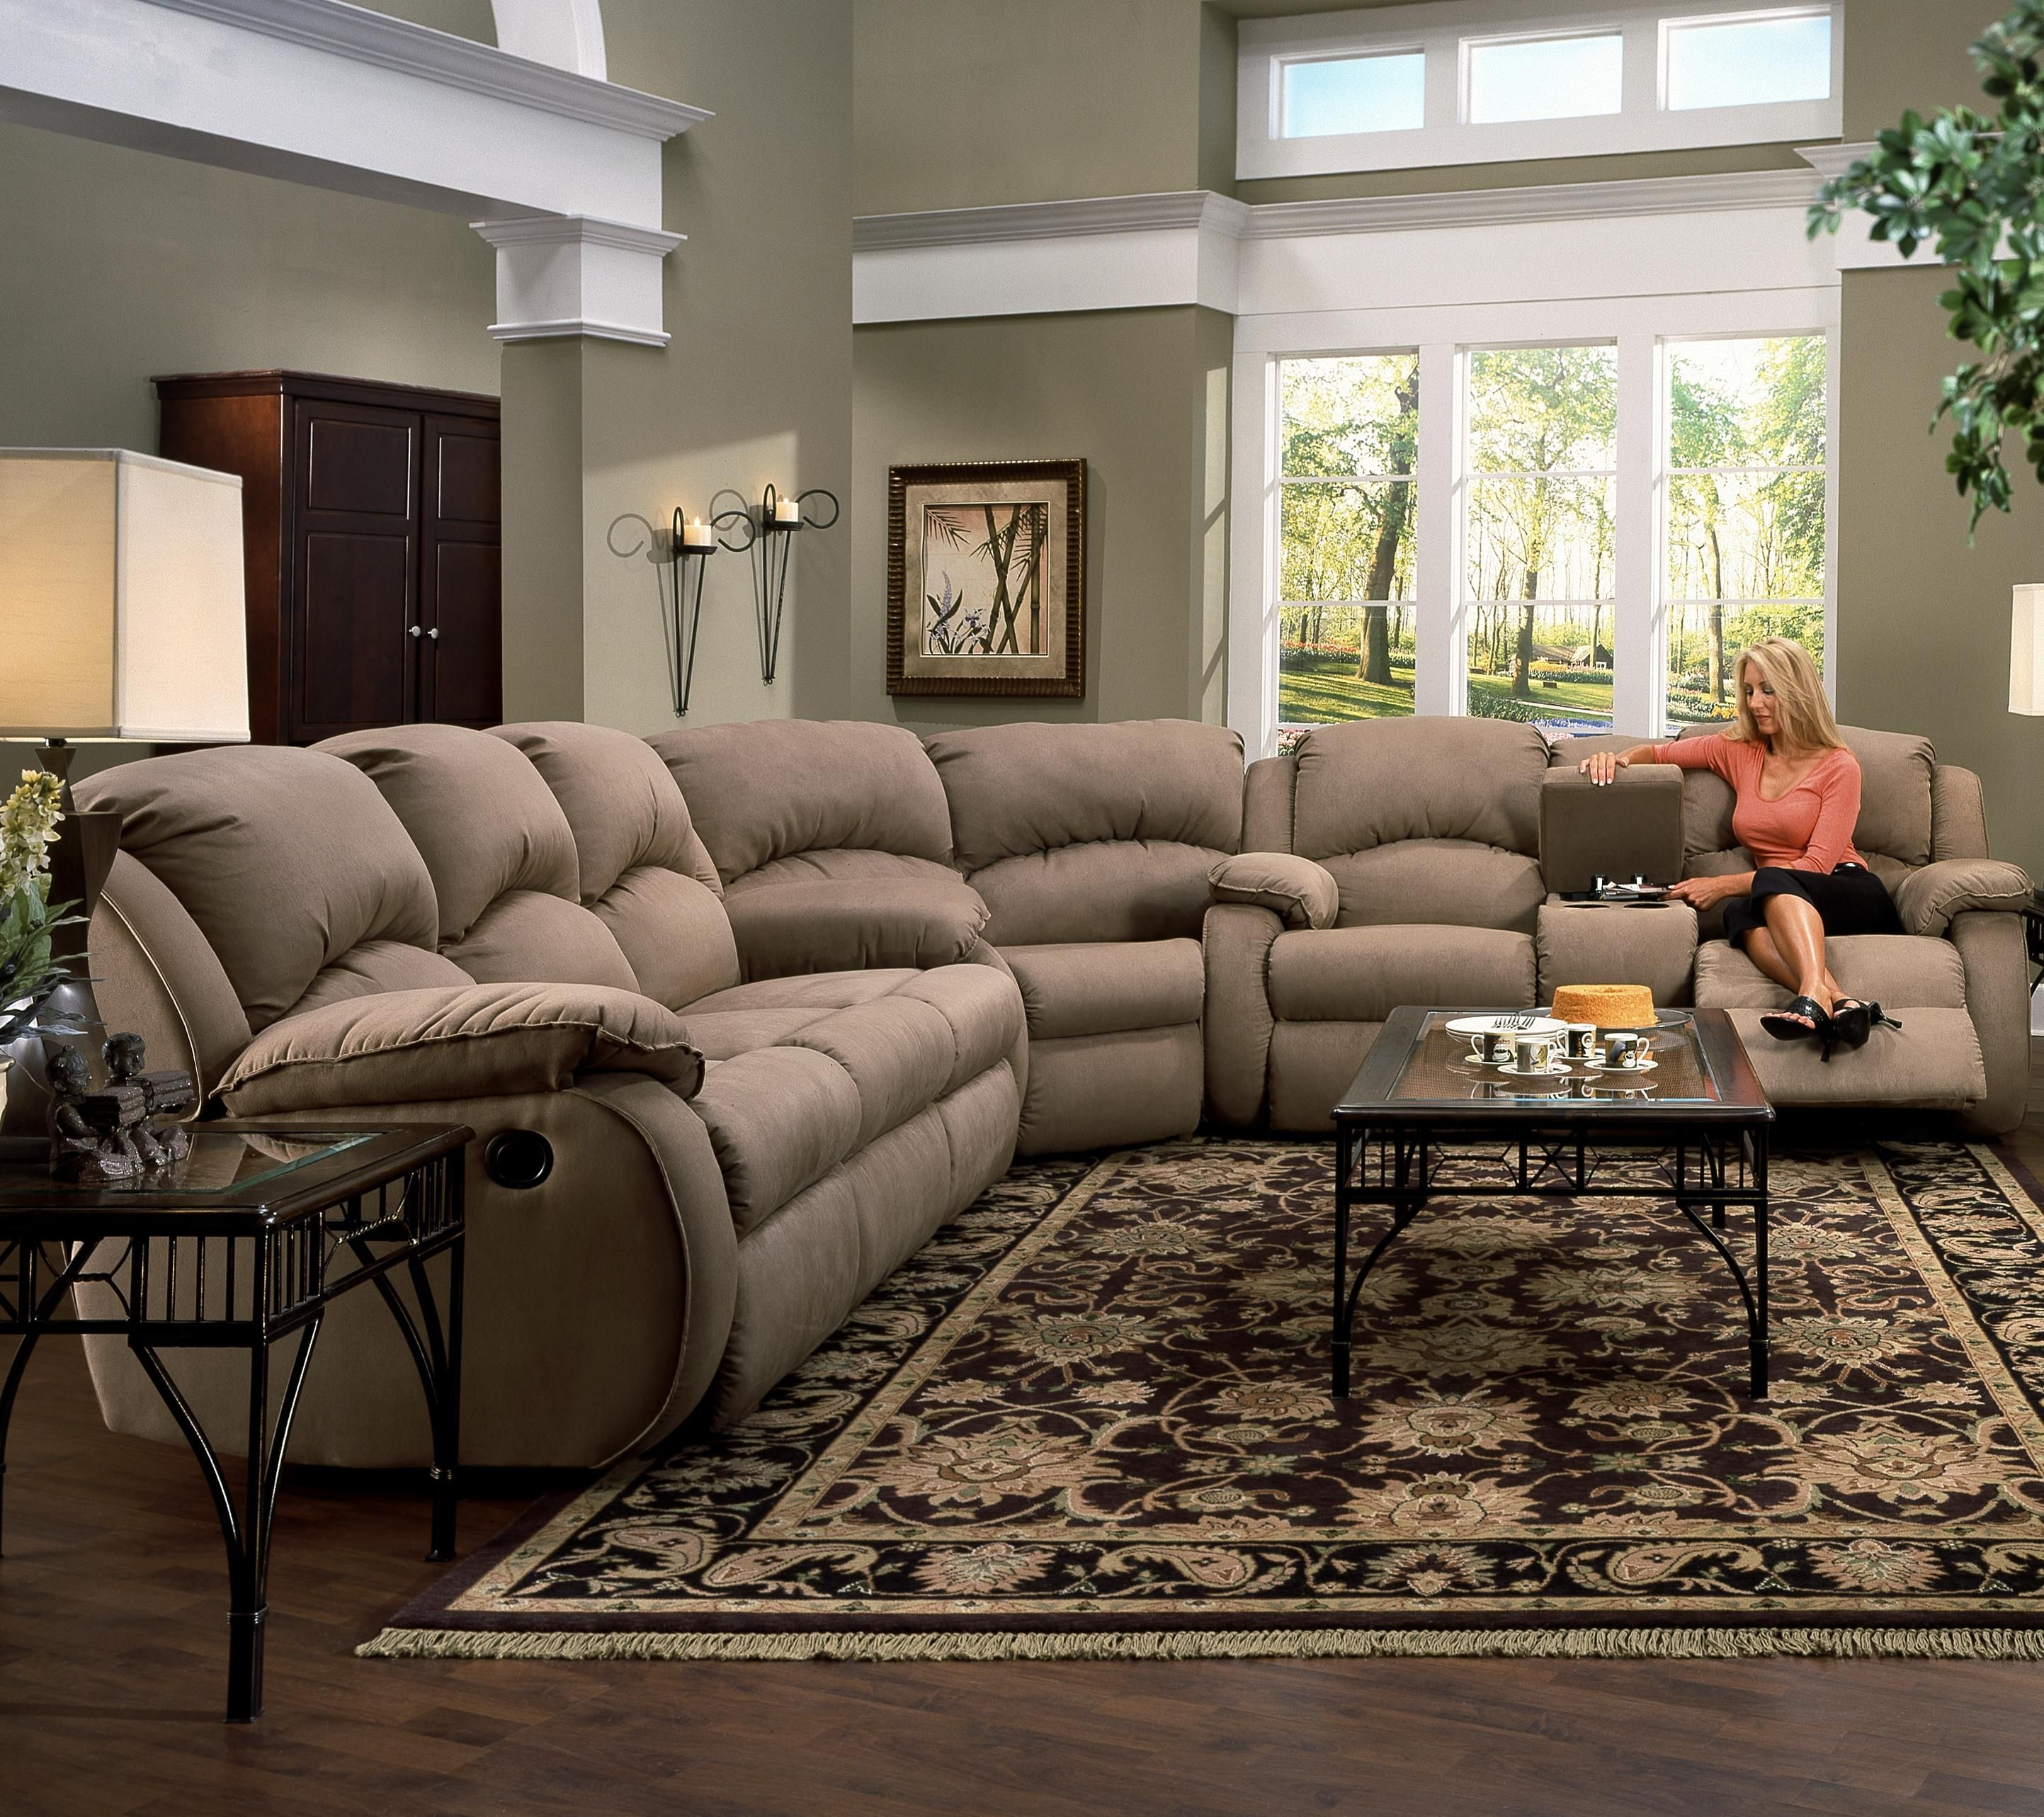 Cagney Sectional Sofa by Southern Motion Home Ideas